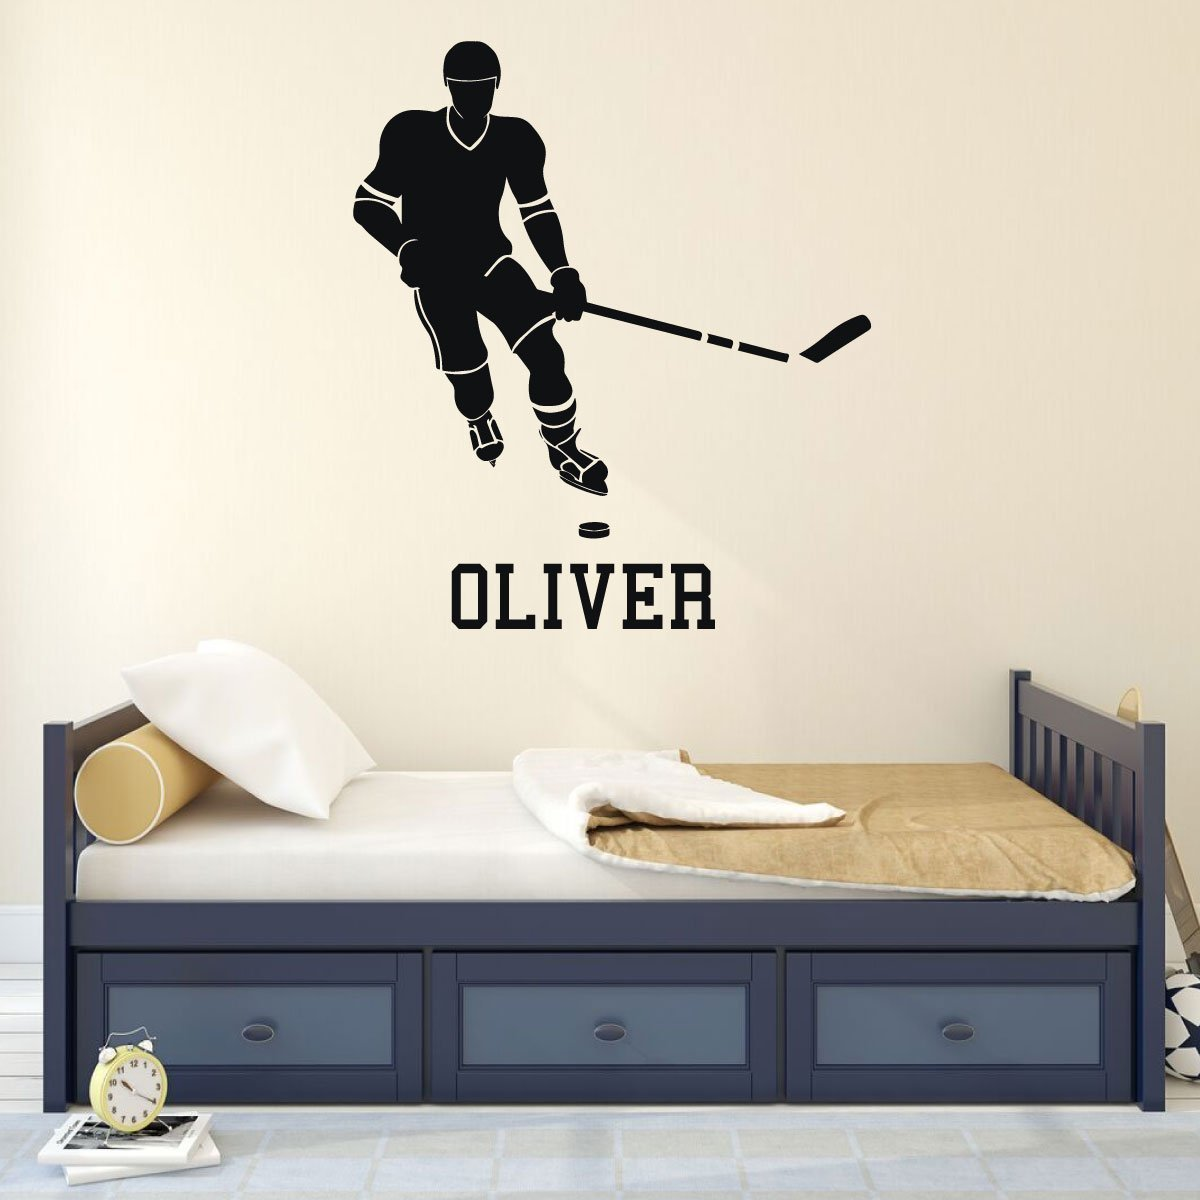 Personalized Hockey Player Vinyl Wall Decal with Custom Name, Color, and Size Options - Team Gift Idea